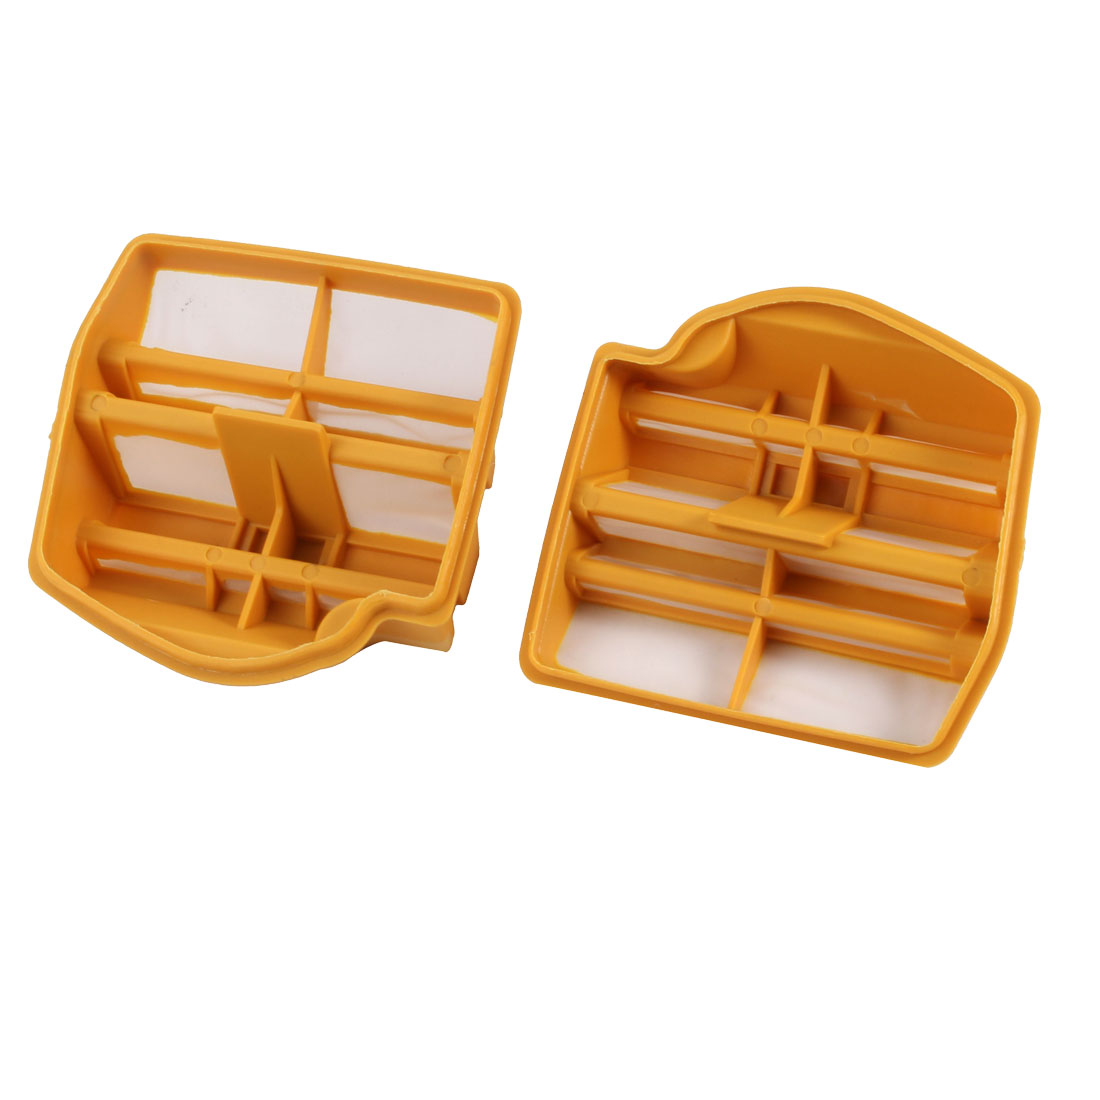 2pcs New Replacement Guard Panel Engine Air Filter Cleaner Accessory for H450